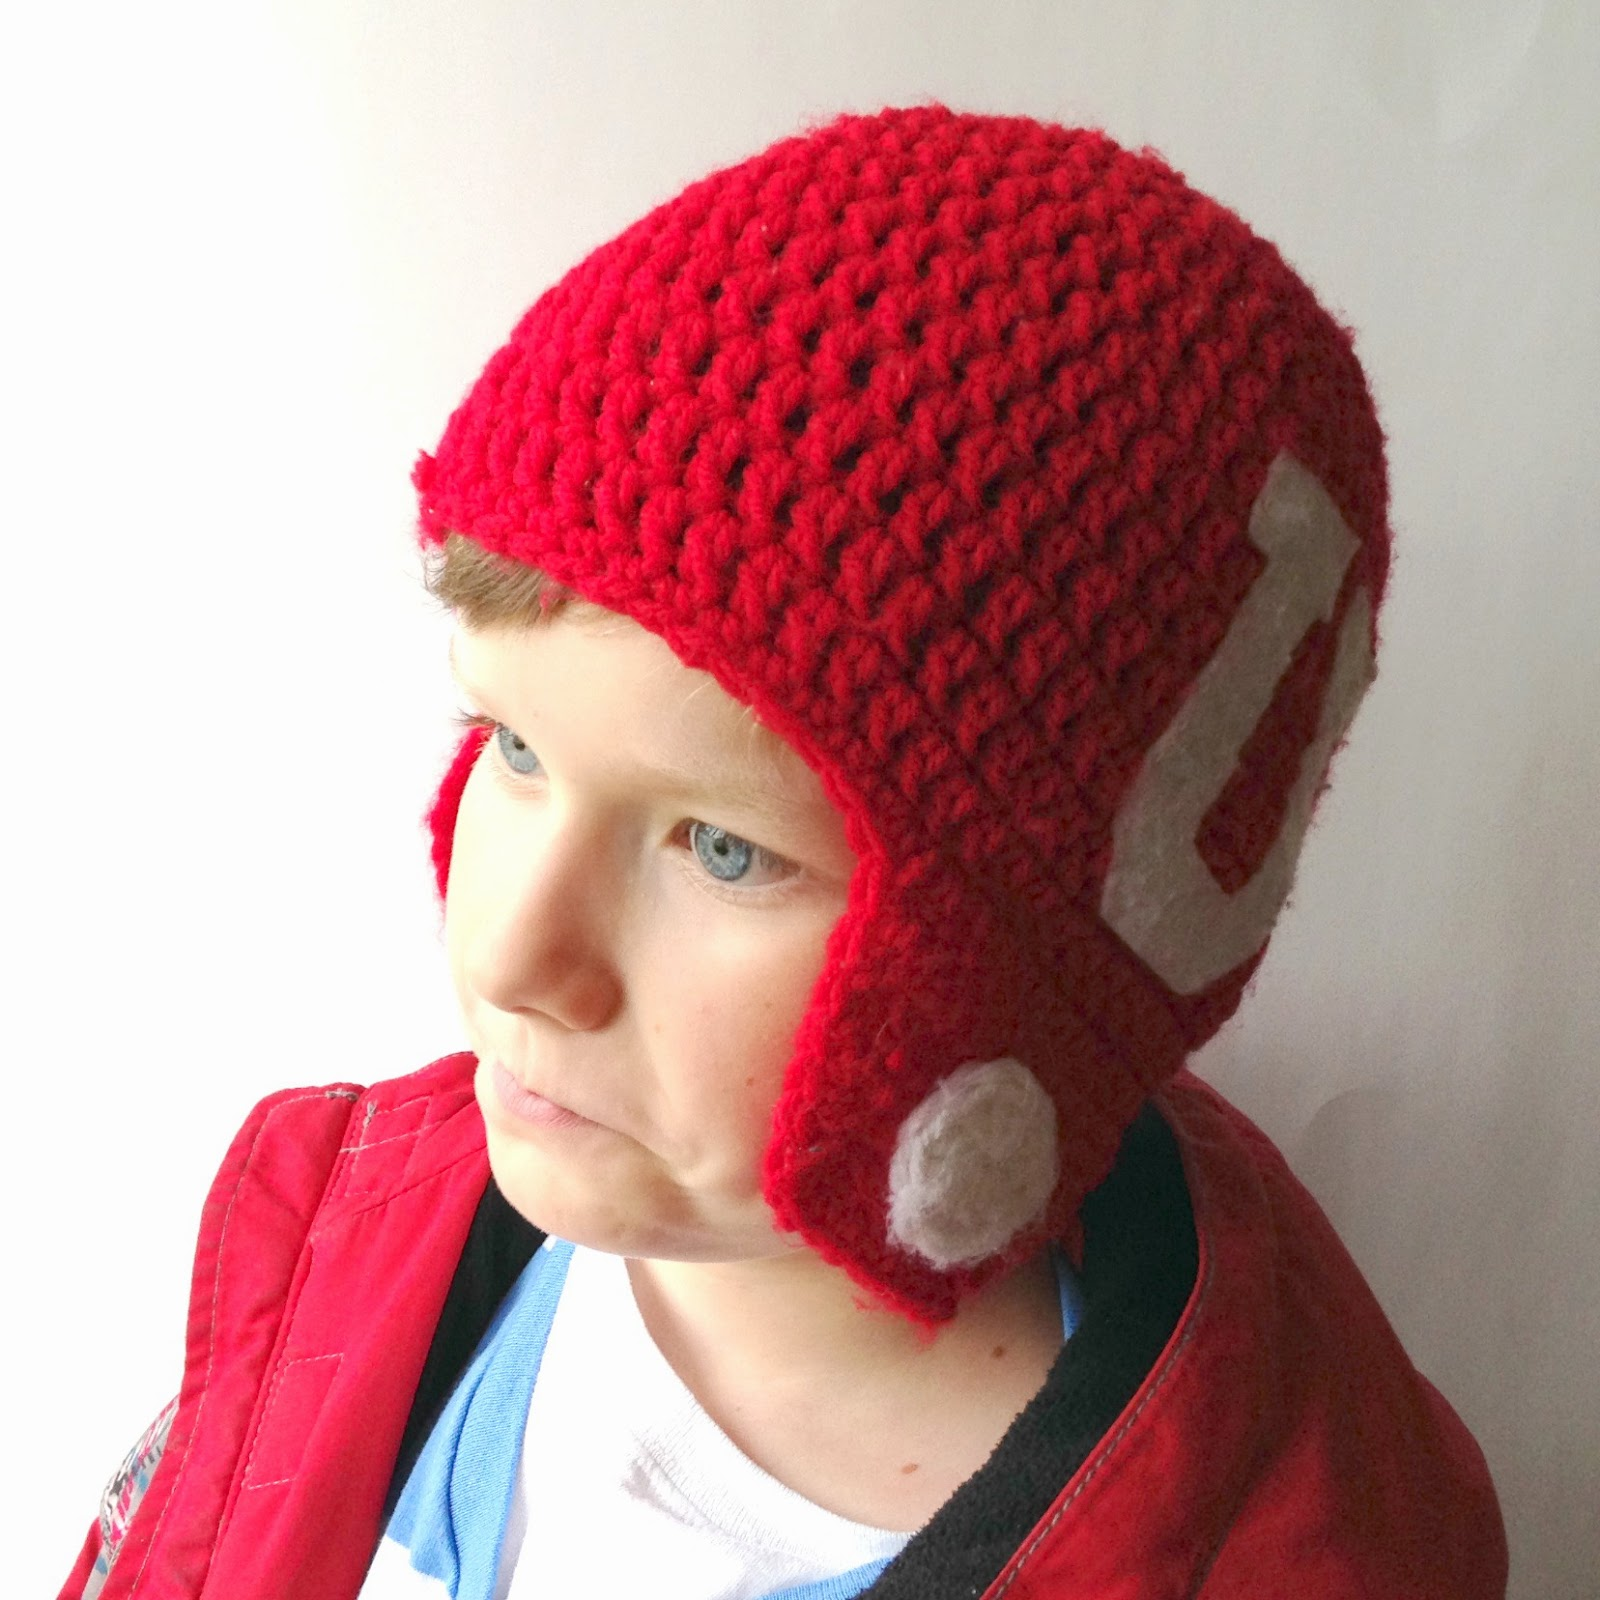 5 little monsters crocheted football helmet hats free pattern crocheted football helmet hats free pattern bankloansurffo Choice Image